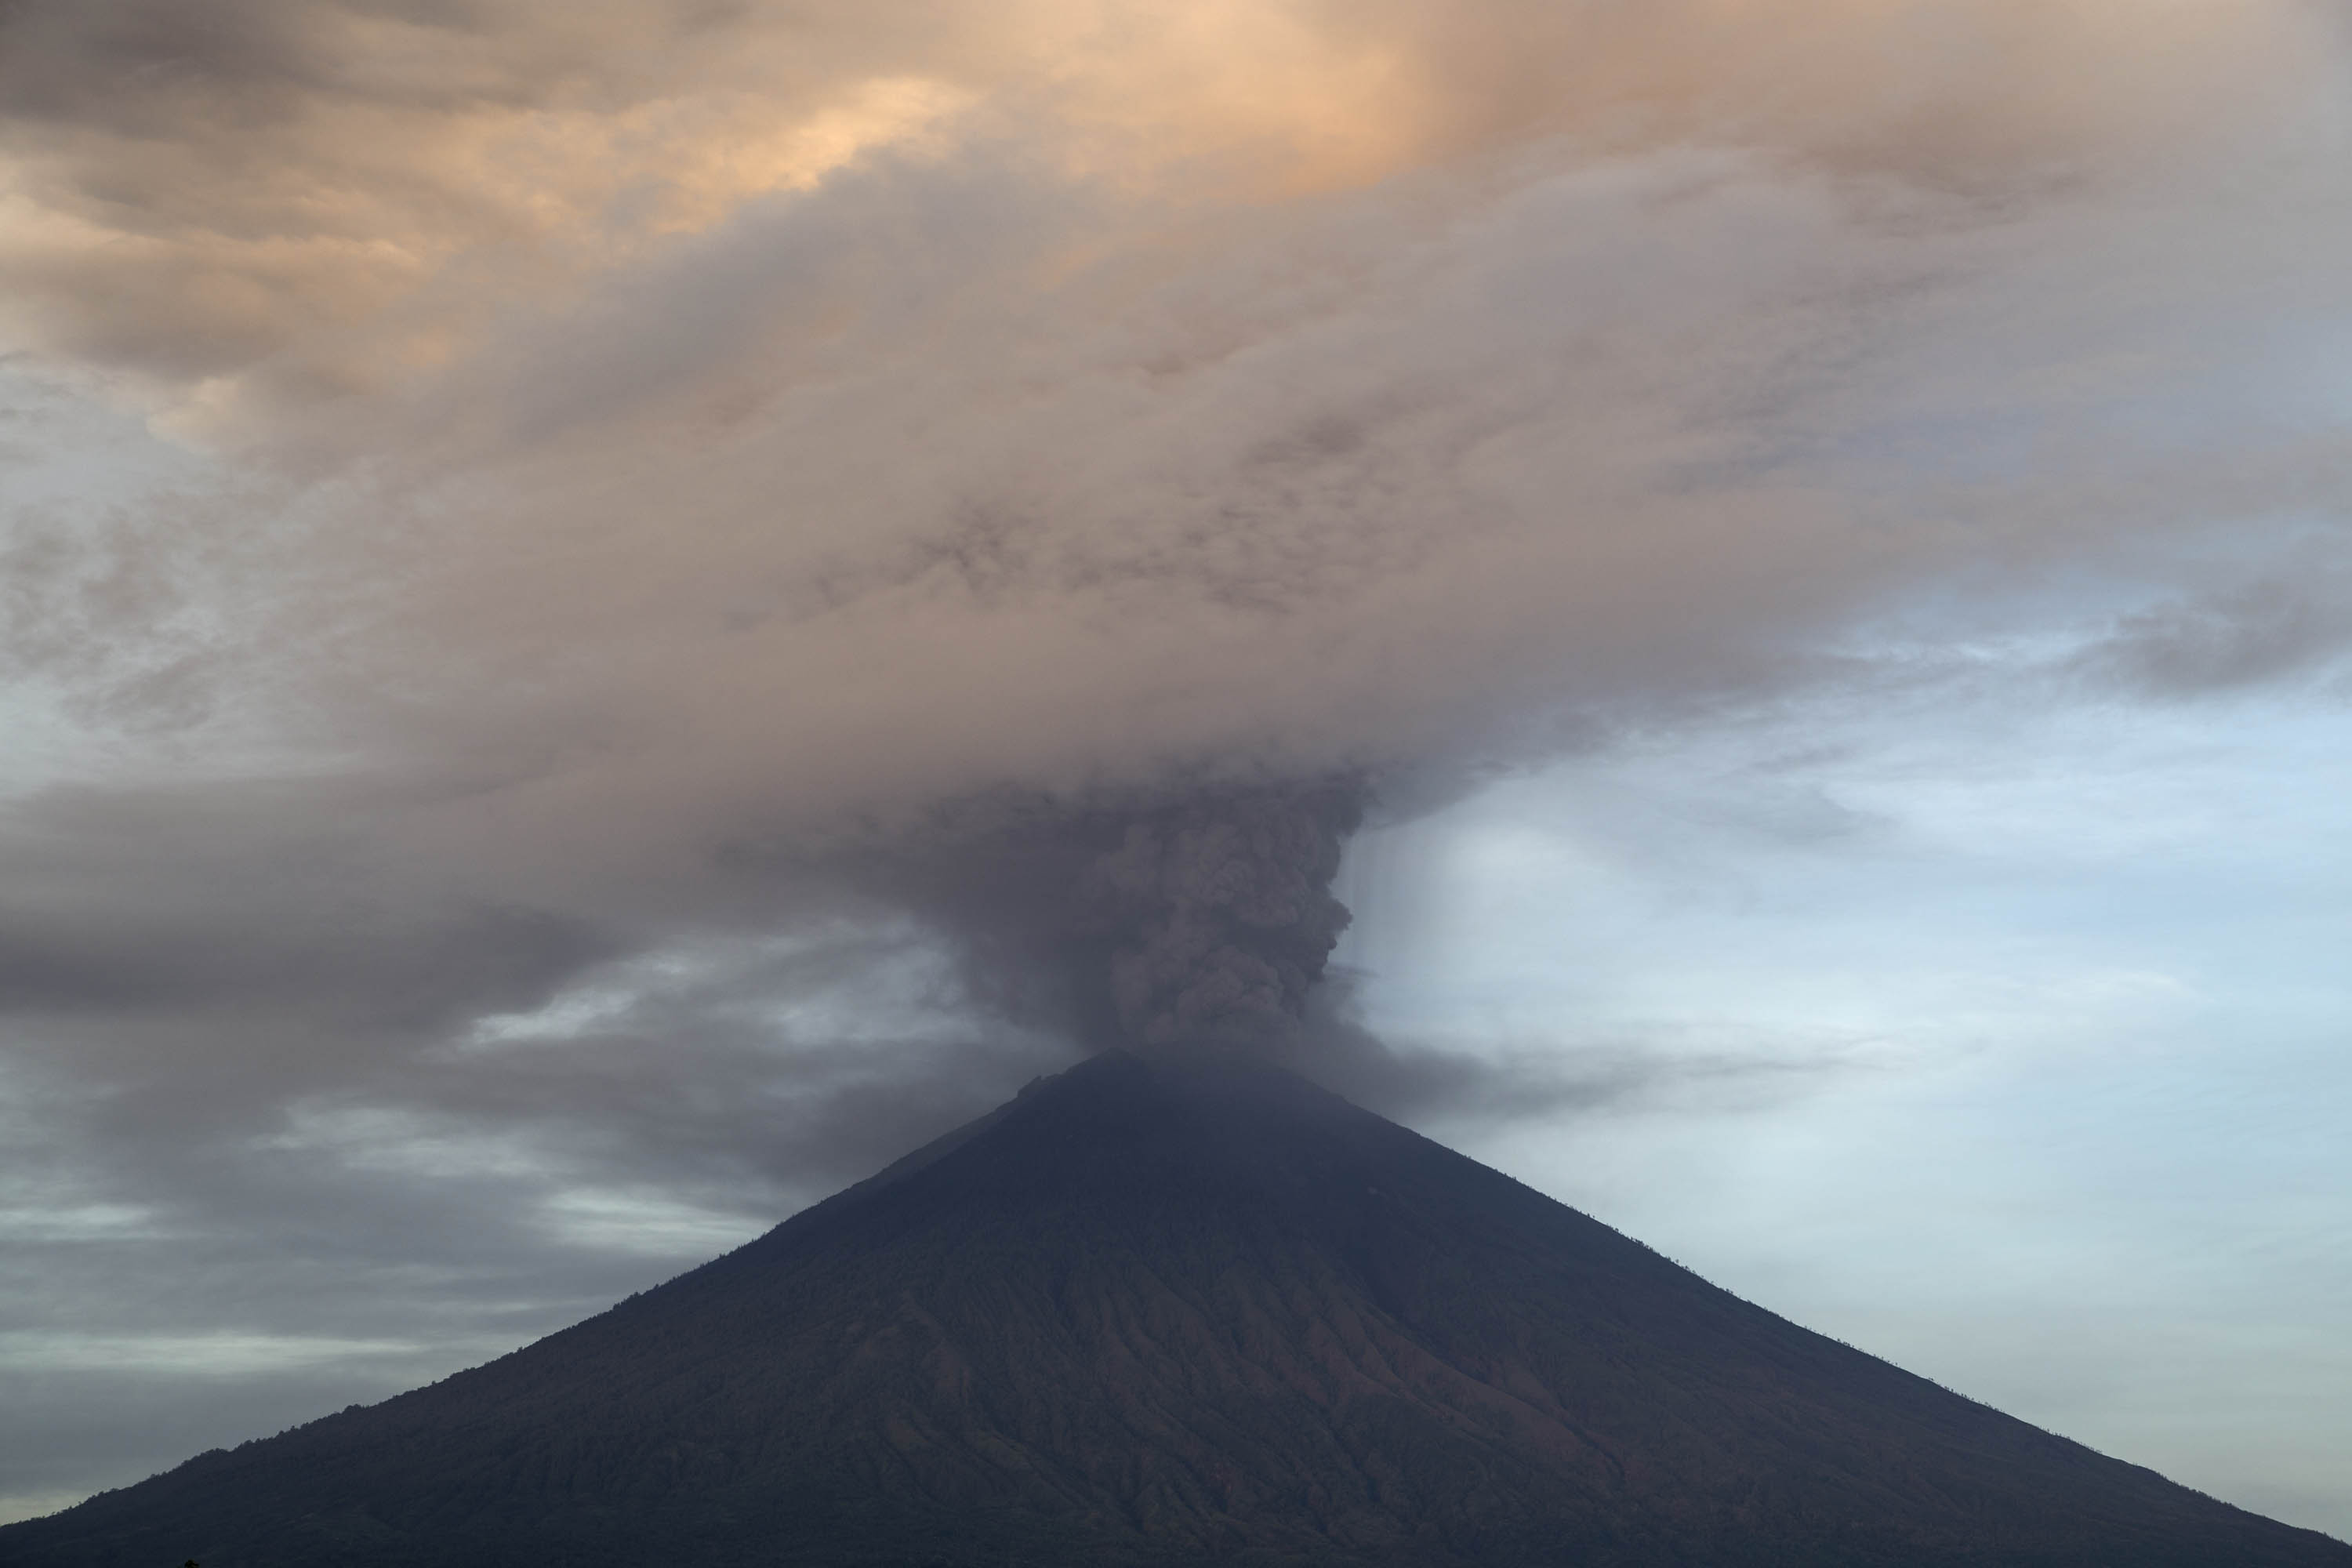 Here's what we know about the Bali volcano eruption that occurred over the weekend